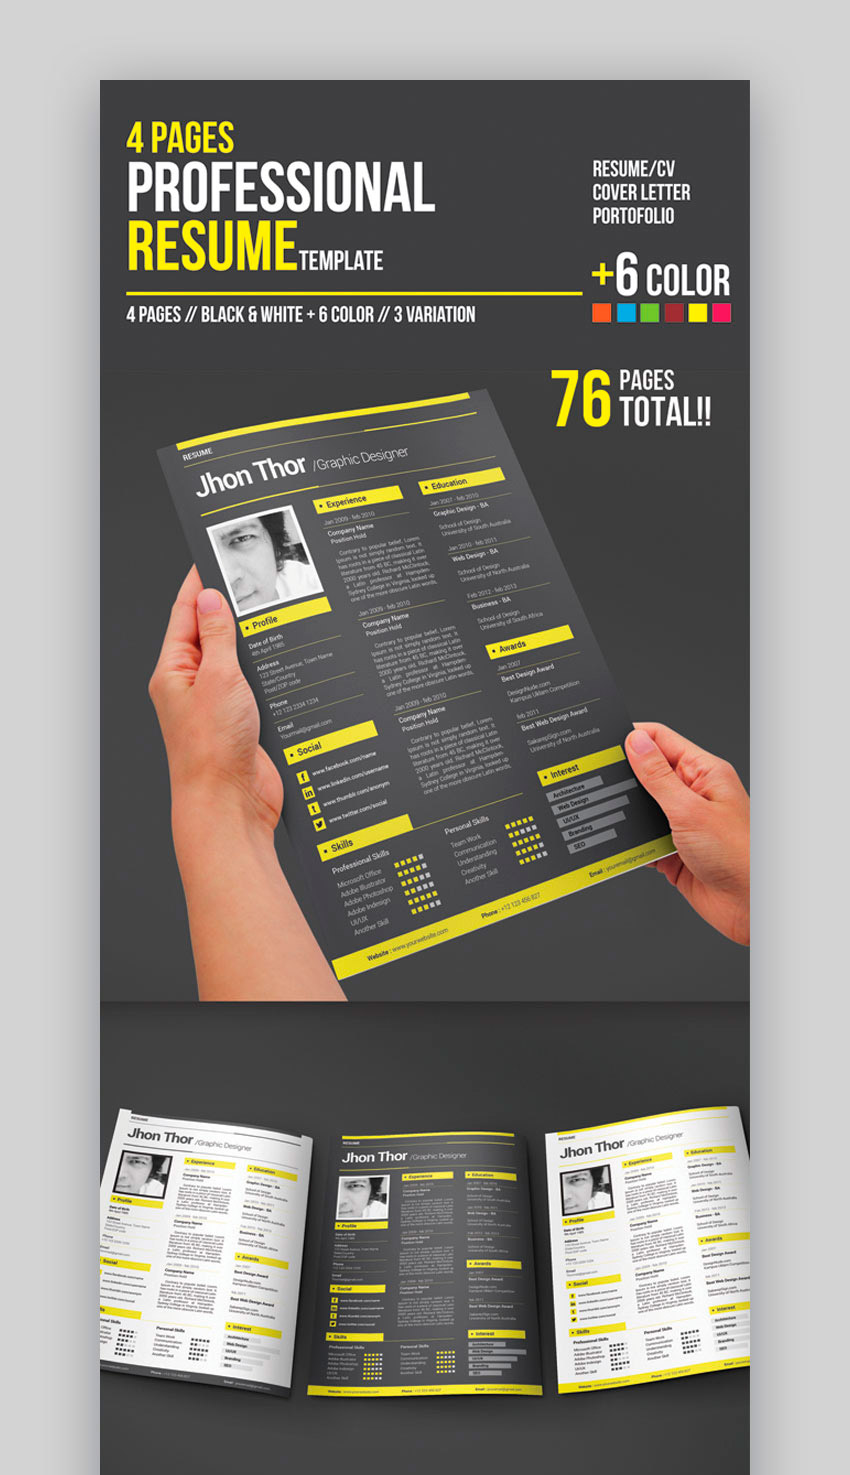 4 Pages Professional Resume Template best design resumes